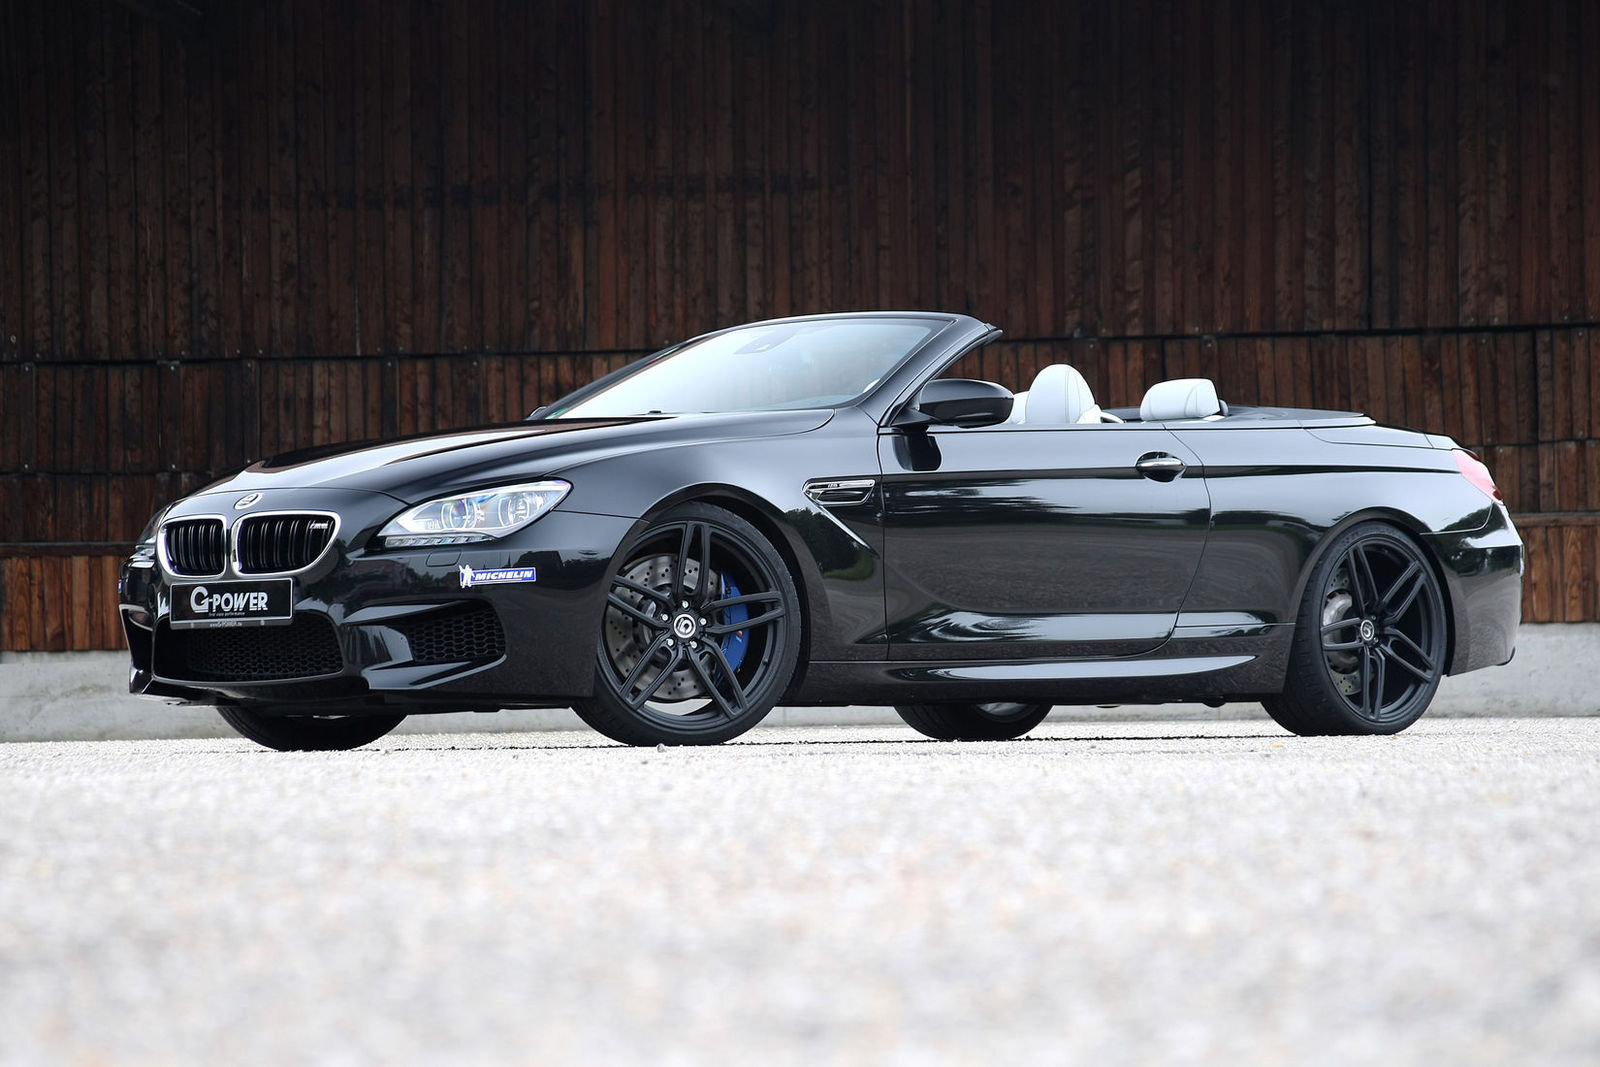 2016 bmw m6 convertible by g power picture 650835 car review top speed. Black Bedroom Furniture Sets. Home Design Ideas